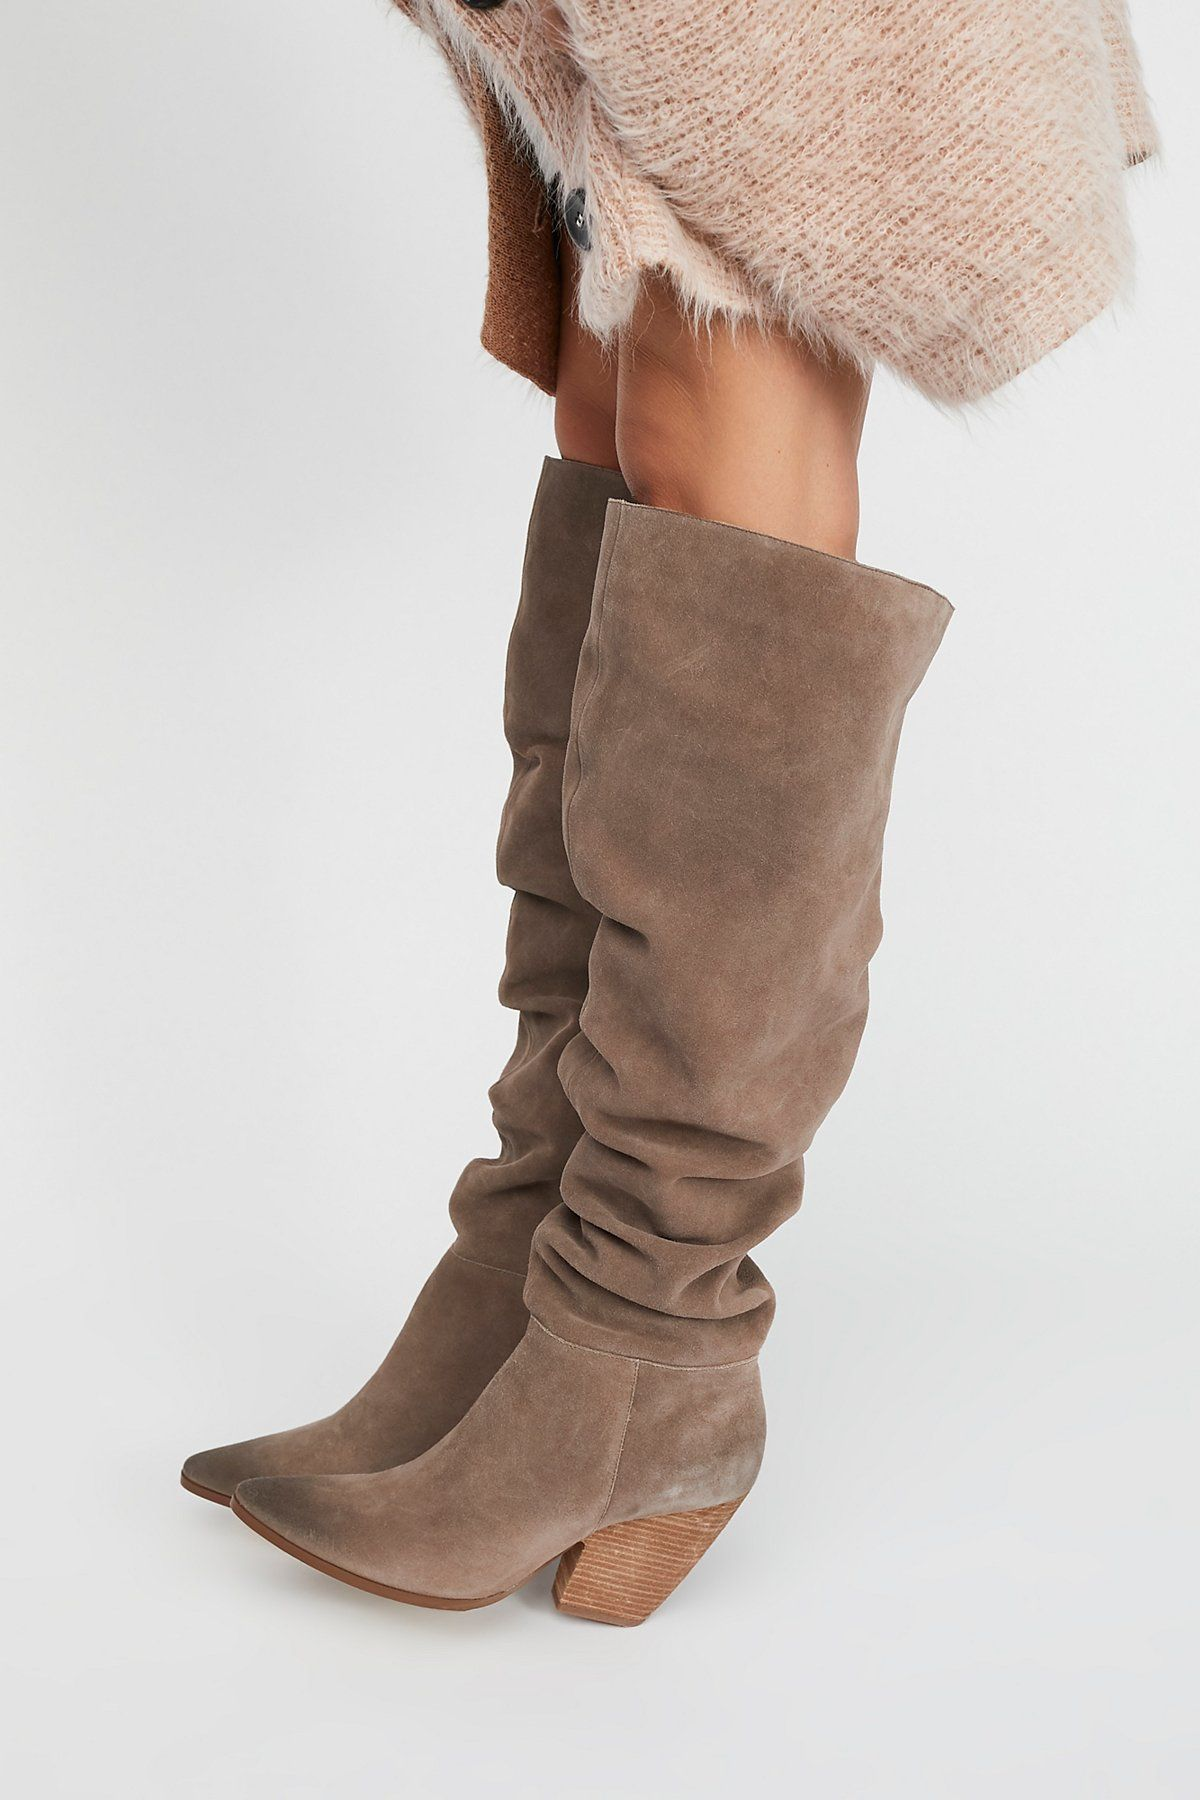 9ec37175a364 Charles David Taupe Suede Jessie Slouch Over-The-Knee Boot at Free People  Clothing Boutique